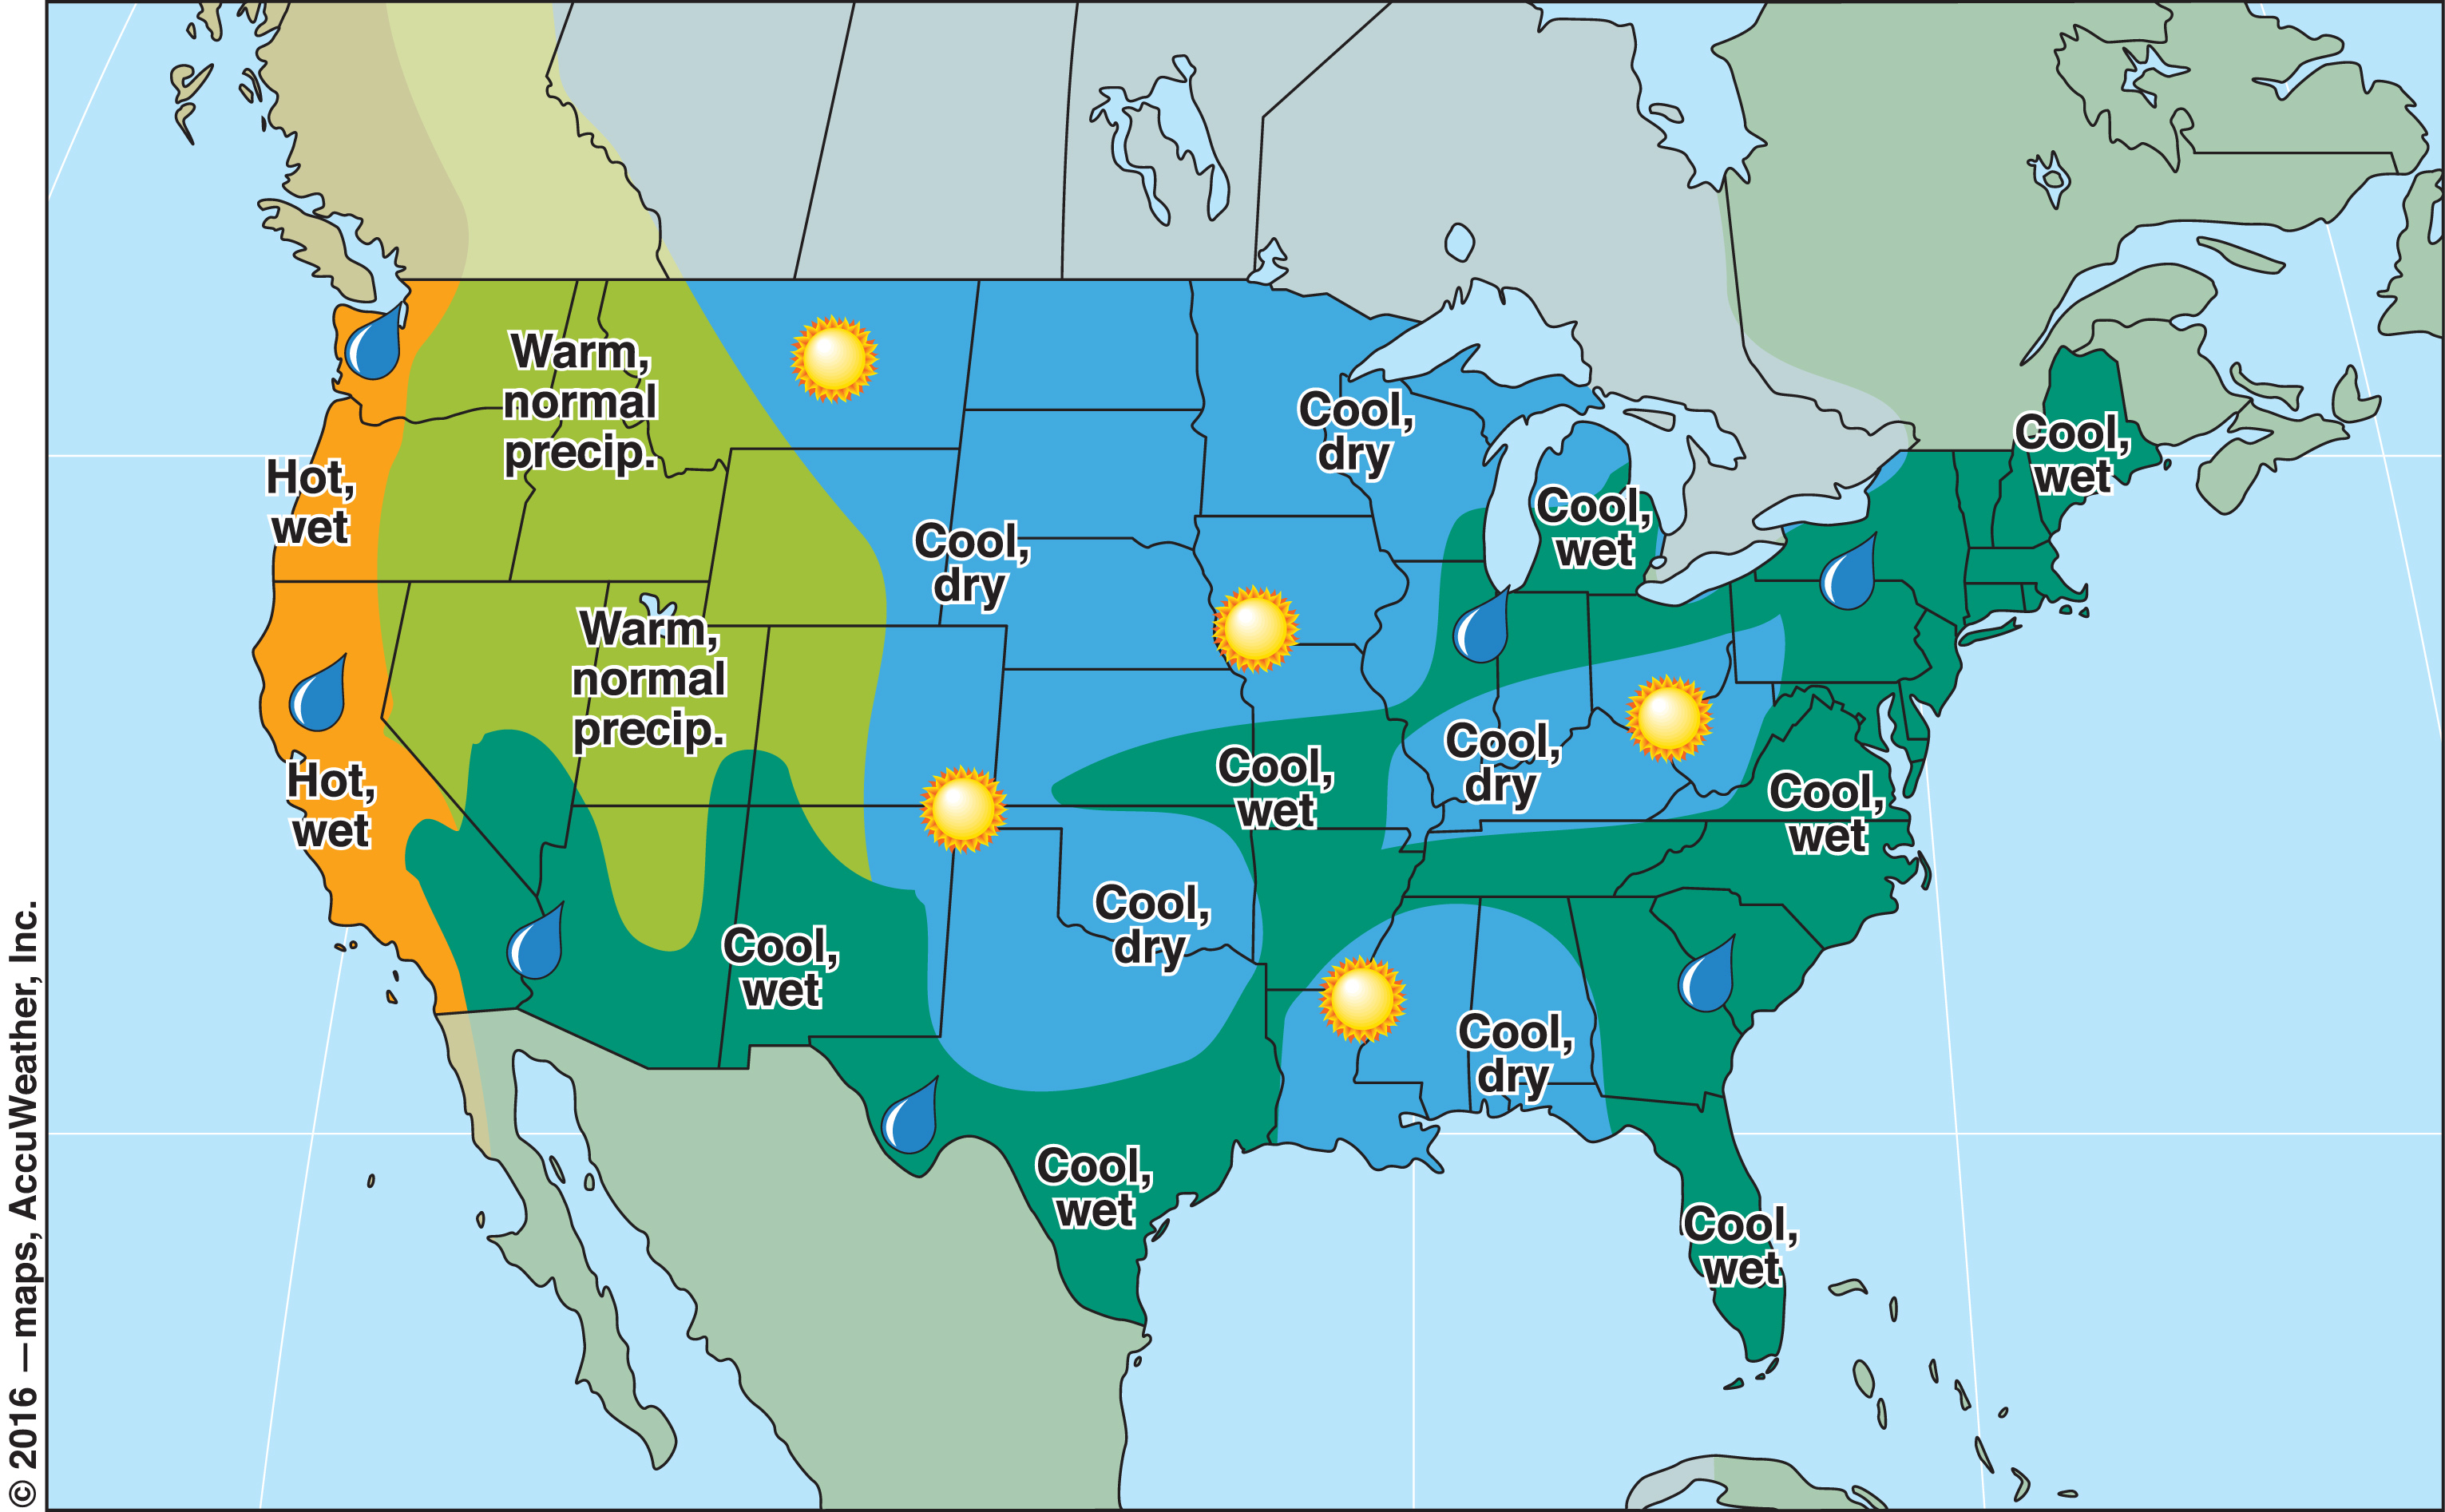 LongRange Weather Forecast For US And Canada Old - Januaray temperatures us map